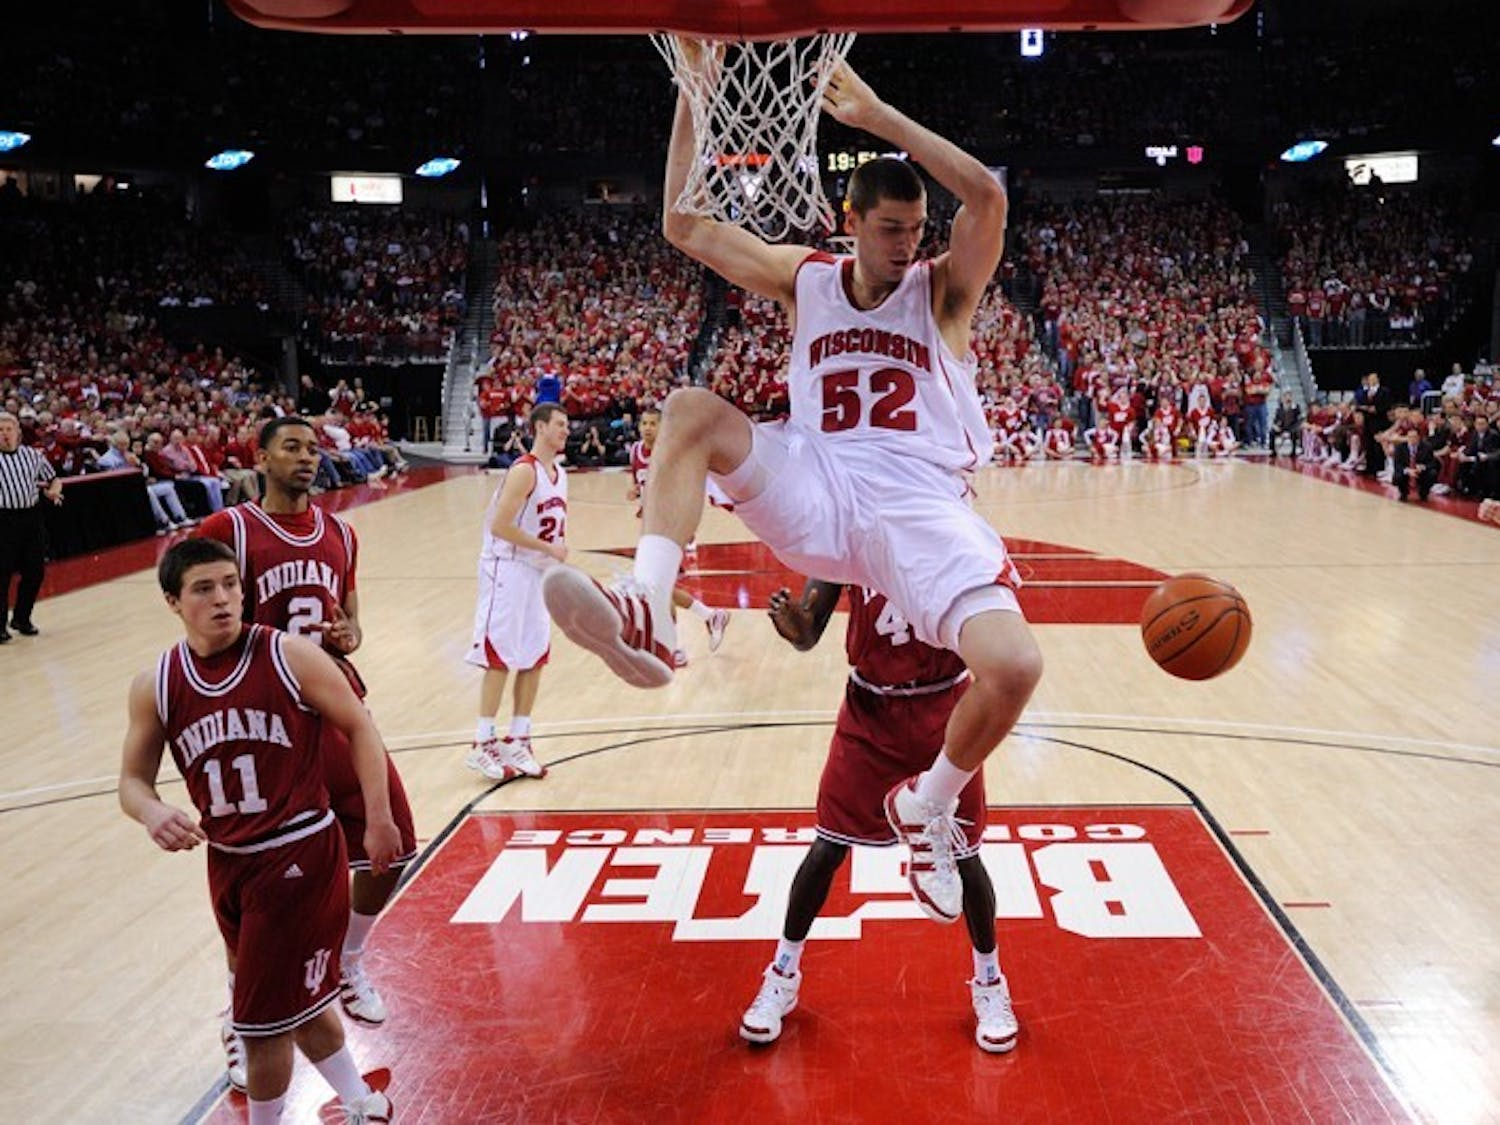 Indiana shows little resistance as UW cruises